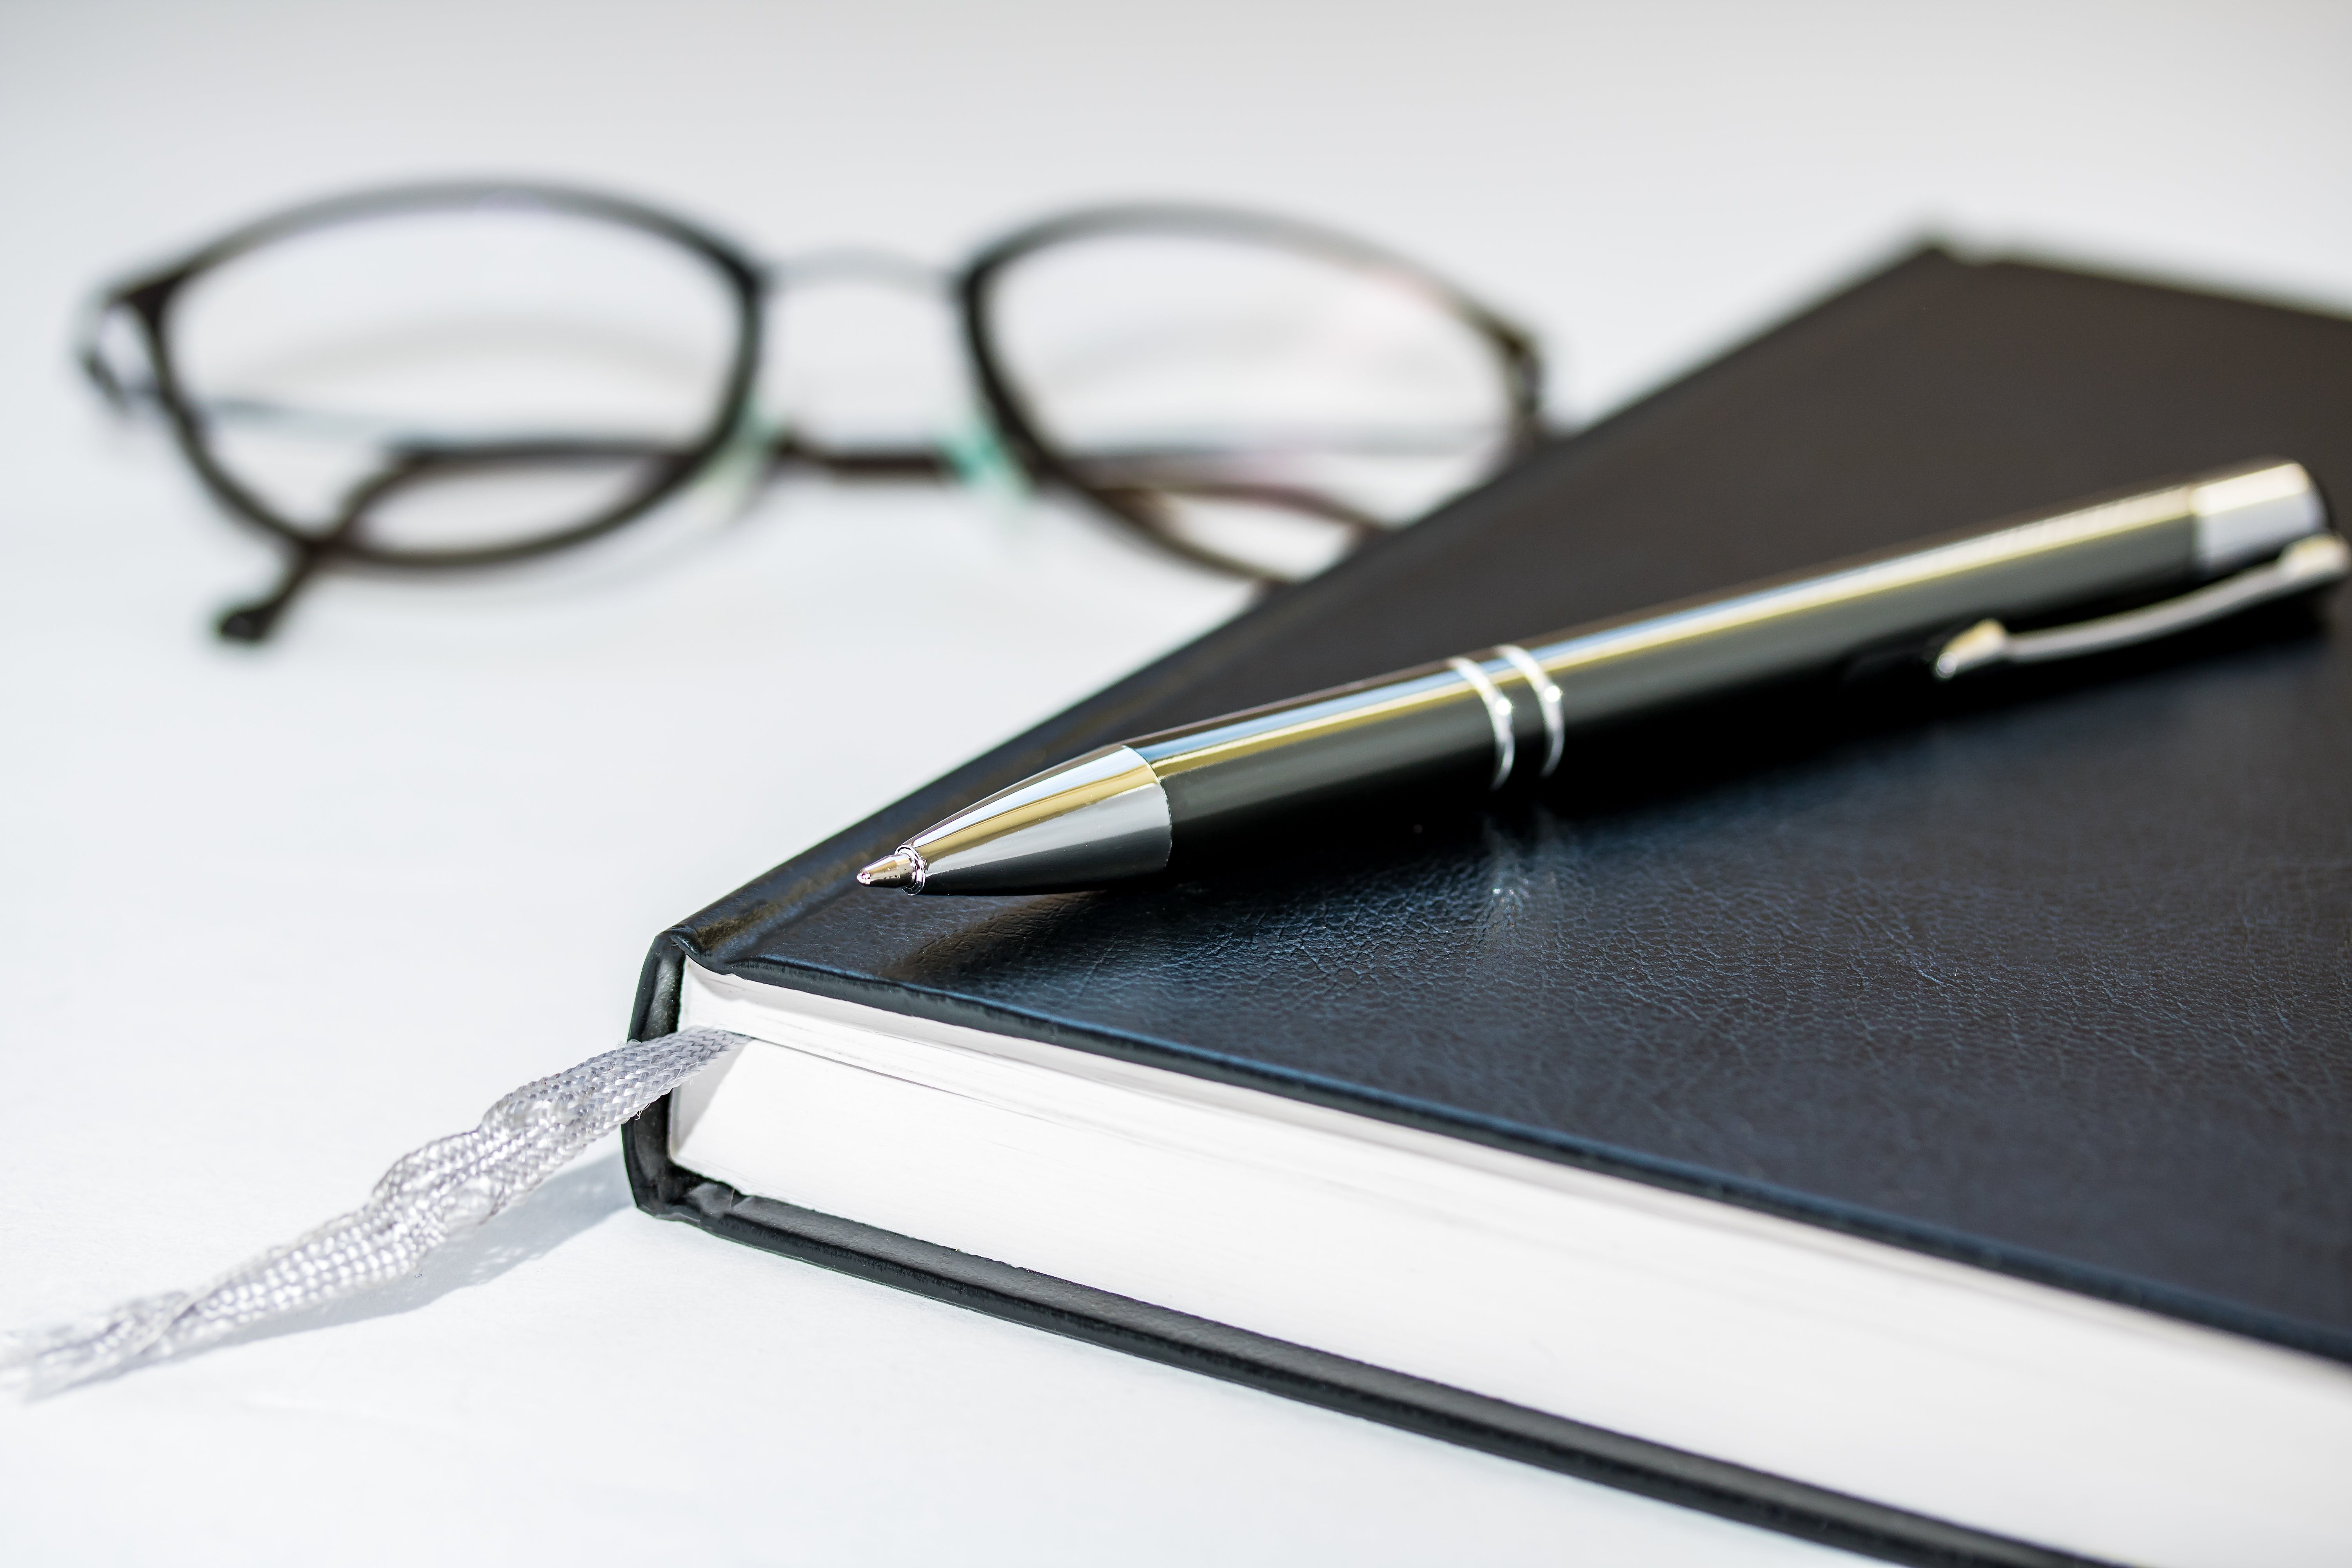 Free stock photo of notebook, pen, blur, paper